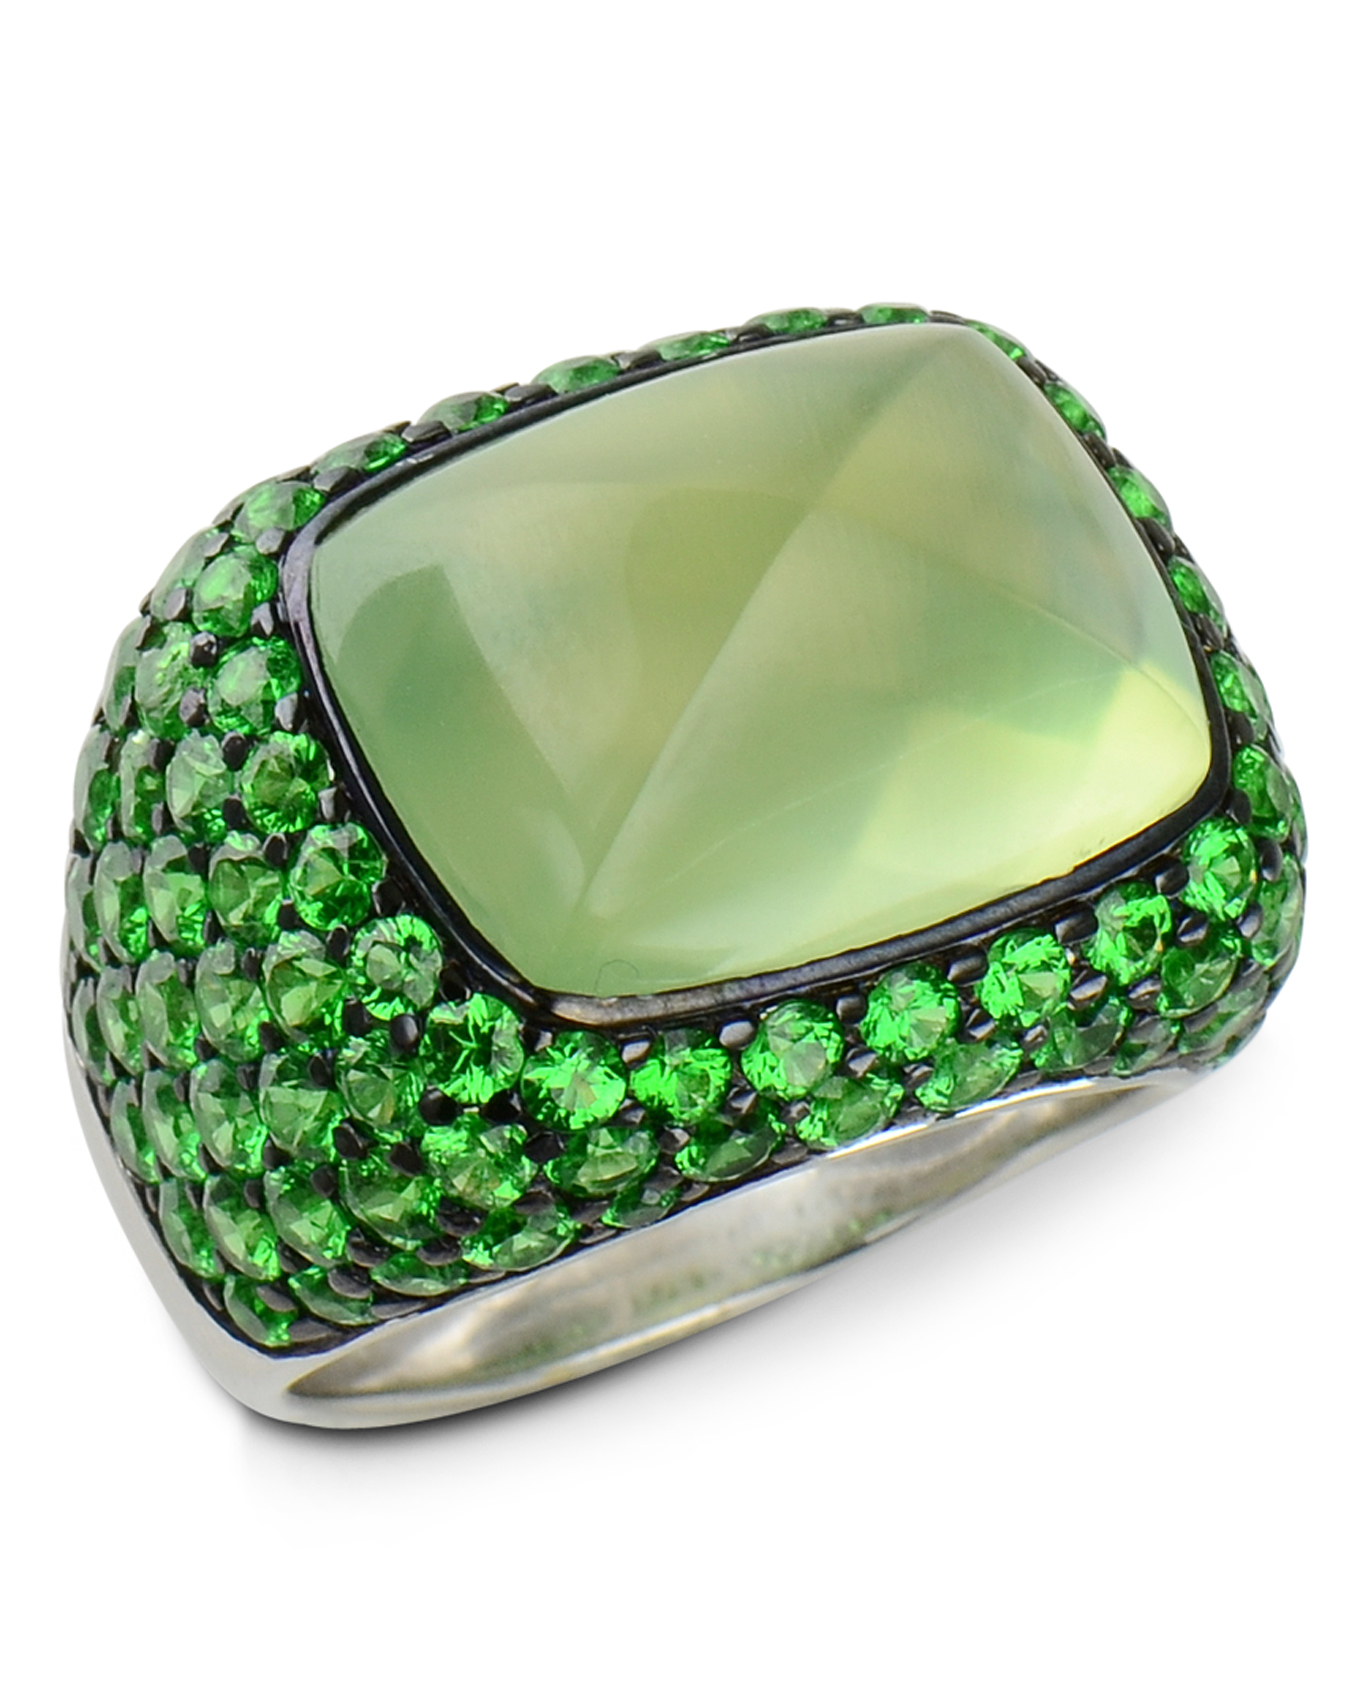 garnet tsavorite precious color gems of gem oval gemstone cushion